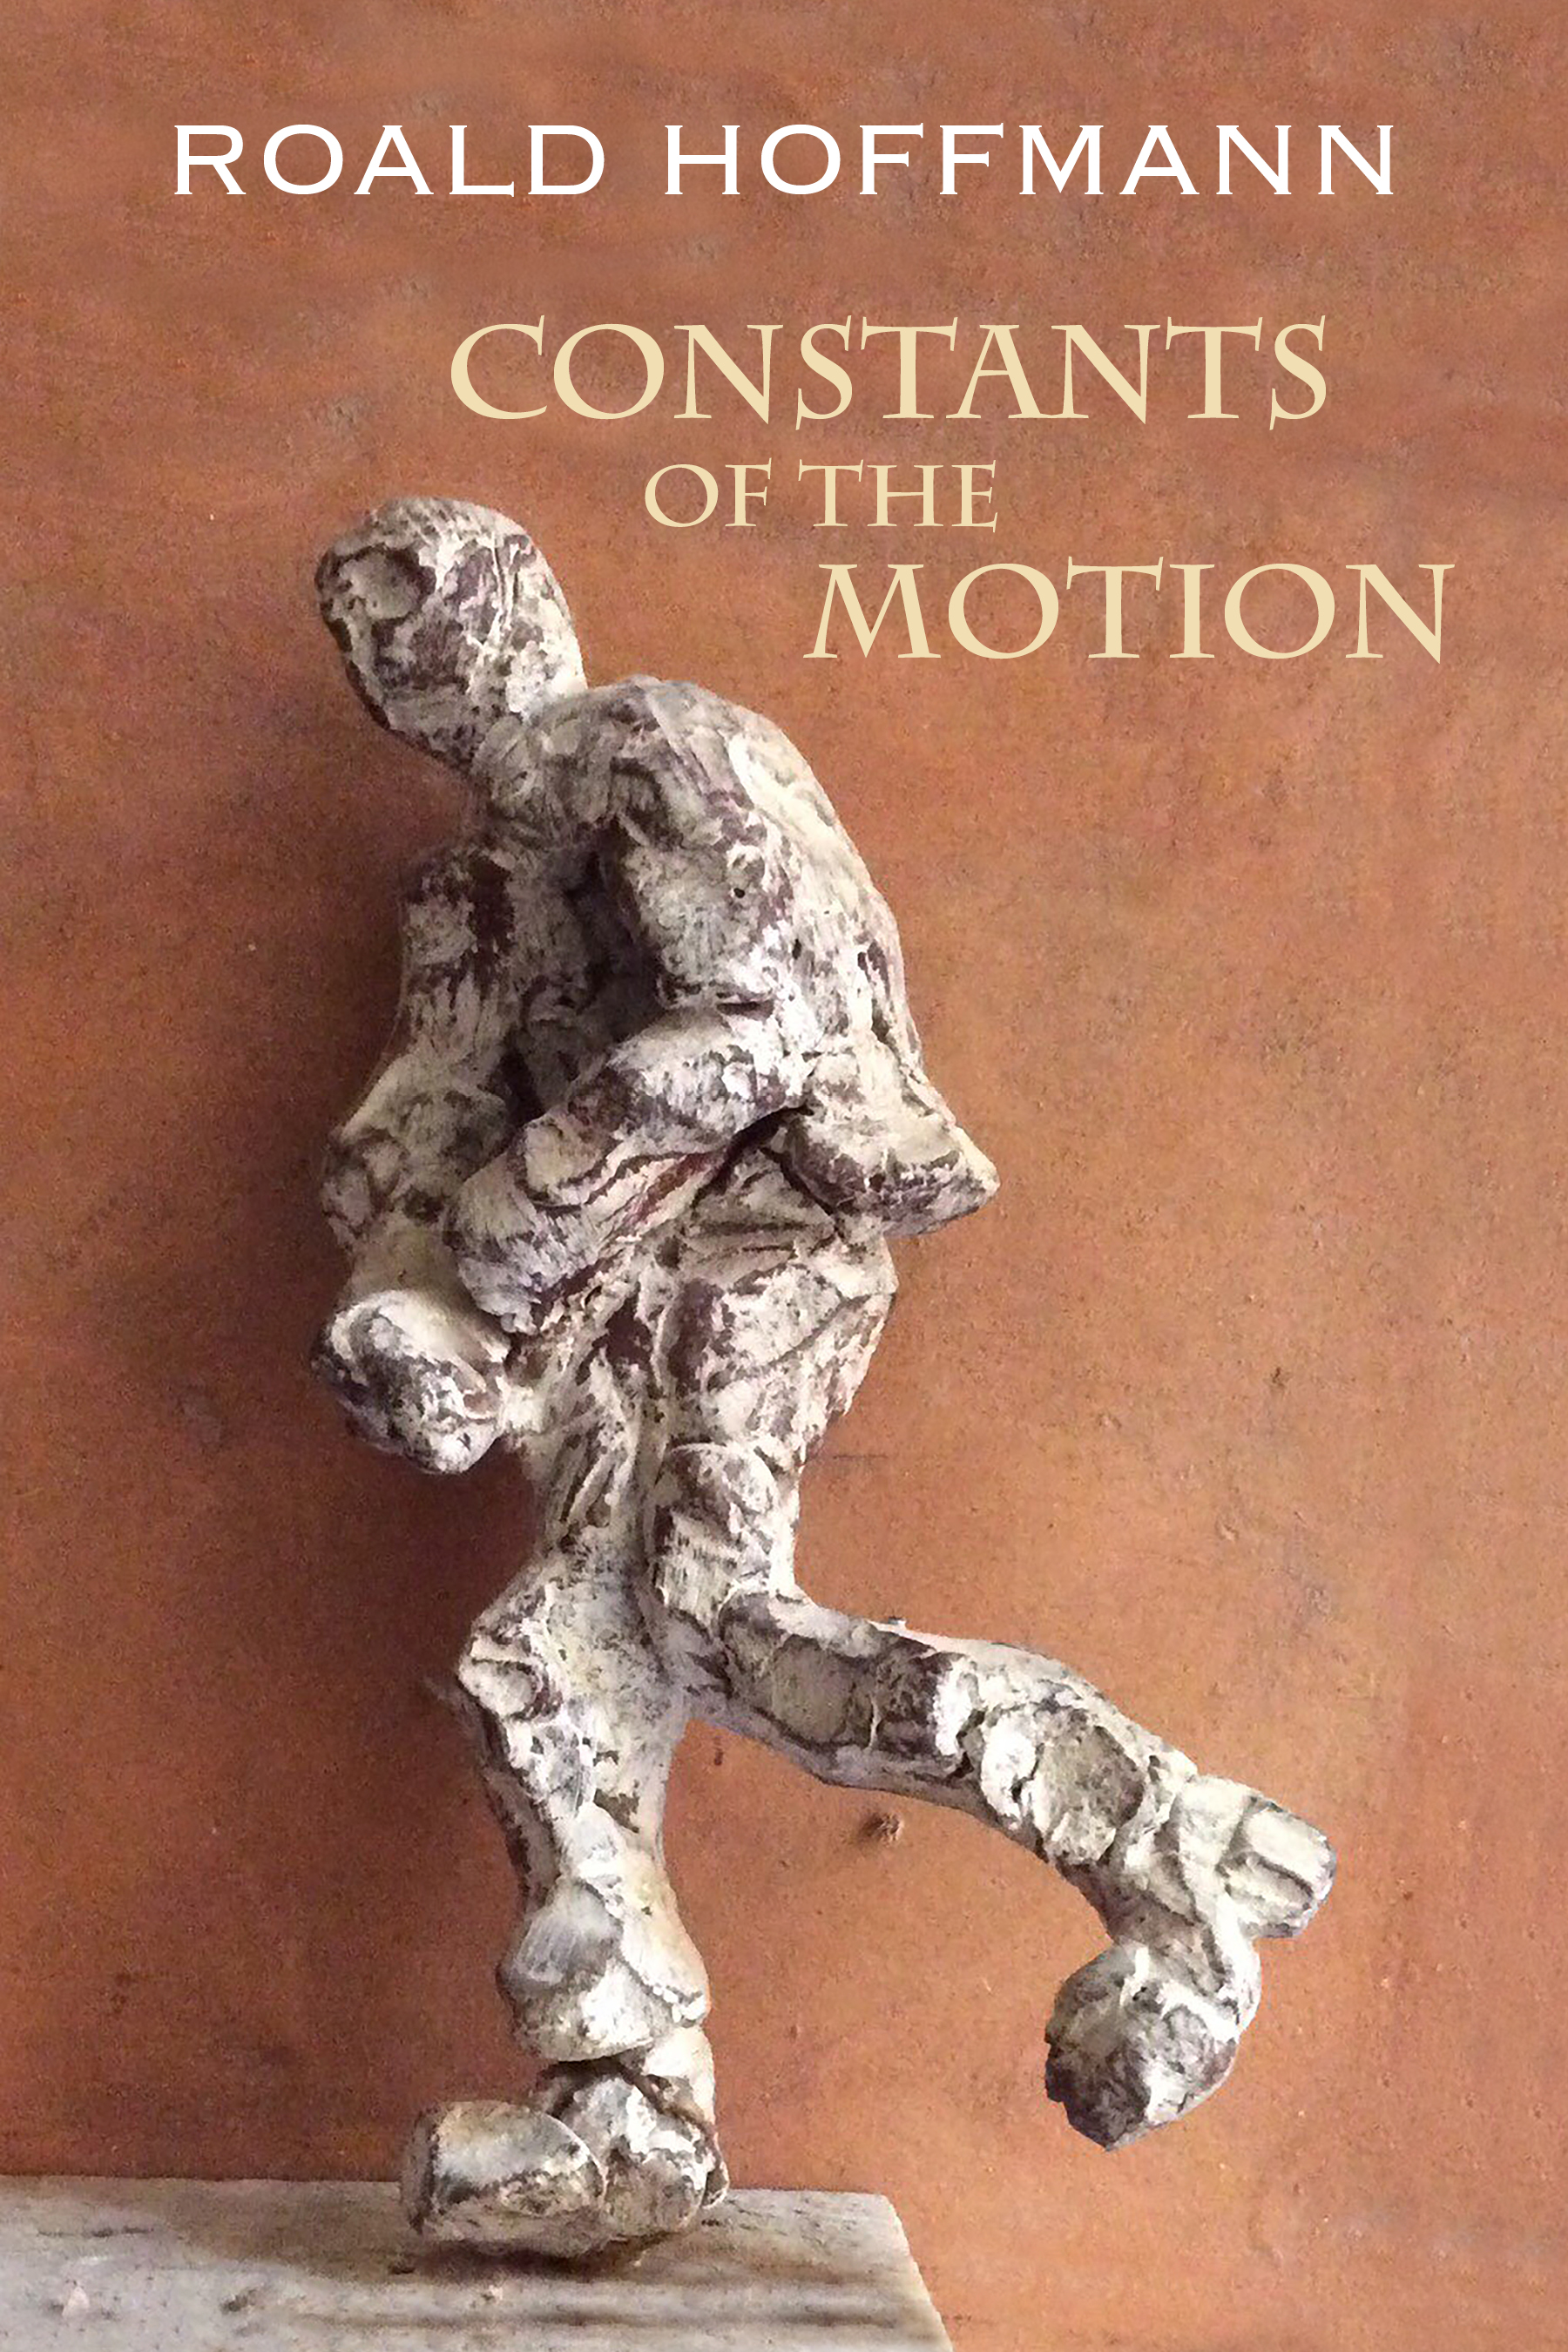 The Constants of the Motion